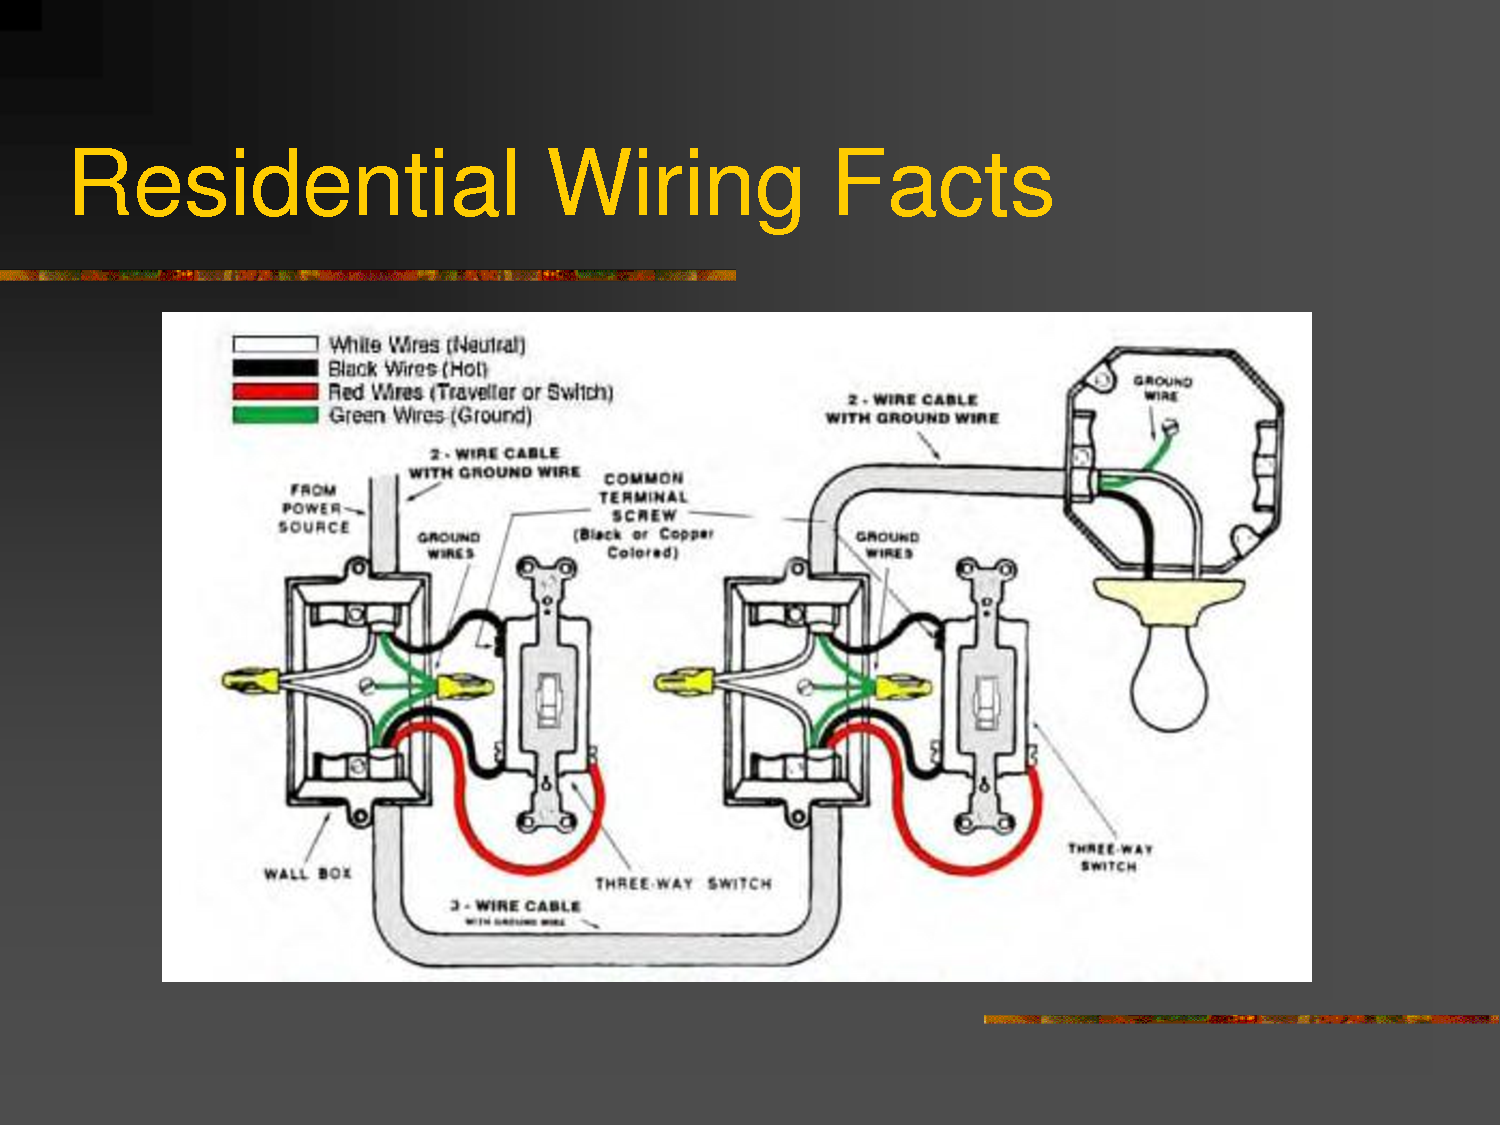 4 best images of residential wiring diagrams house electrical rh pinterest com Residential Wiring Color Codes residential wiring neutral and ground